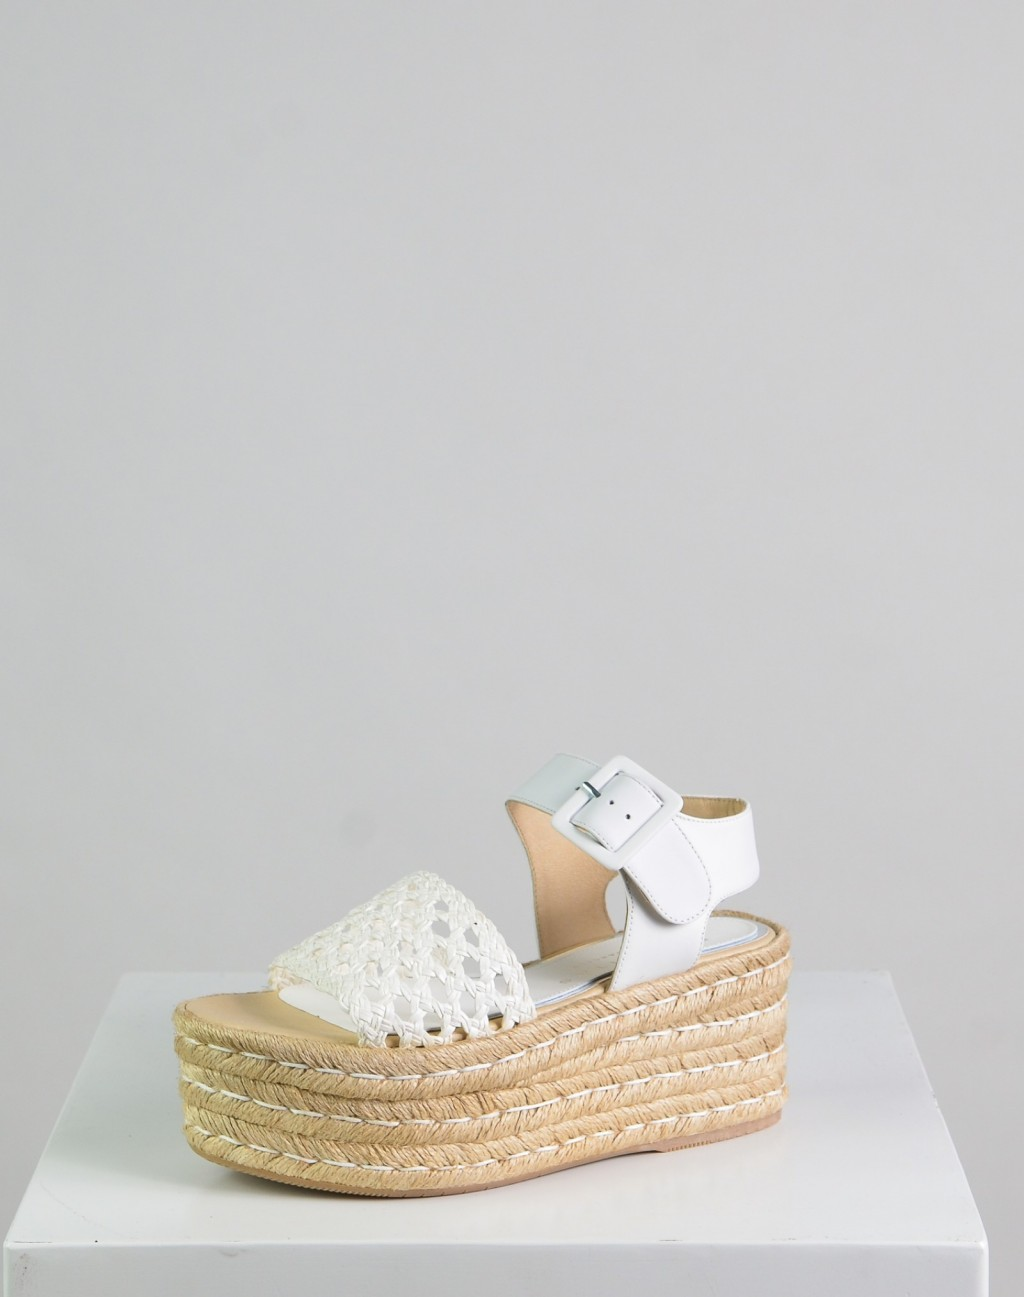 detailed look 38768 074f0 Espadrillas con Zeppa e Slip-on: i Modelli più Trendy ...